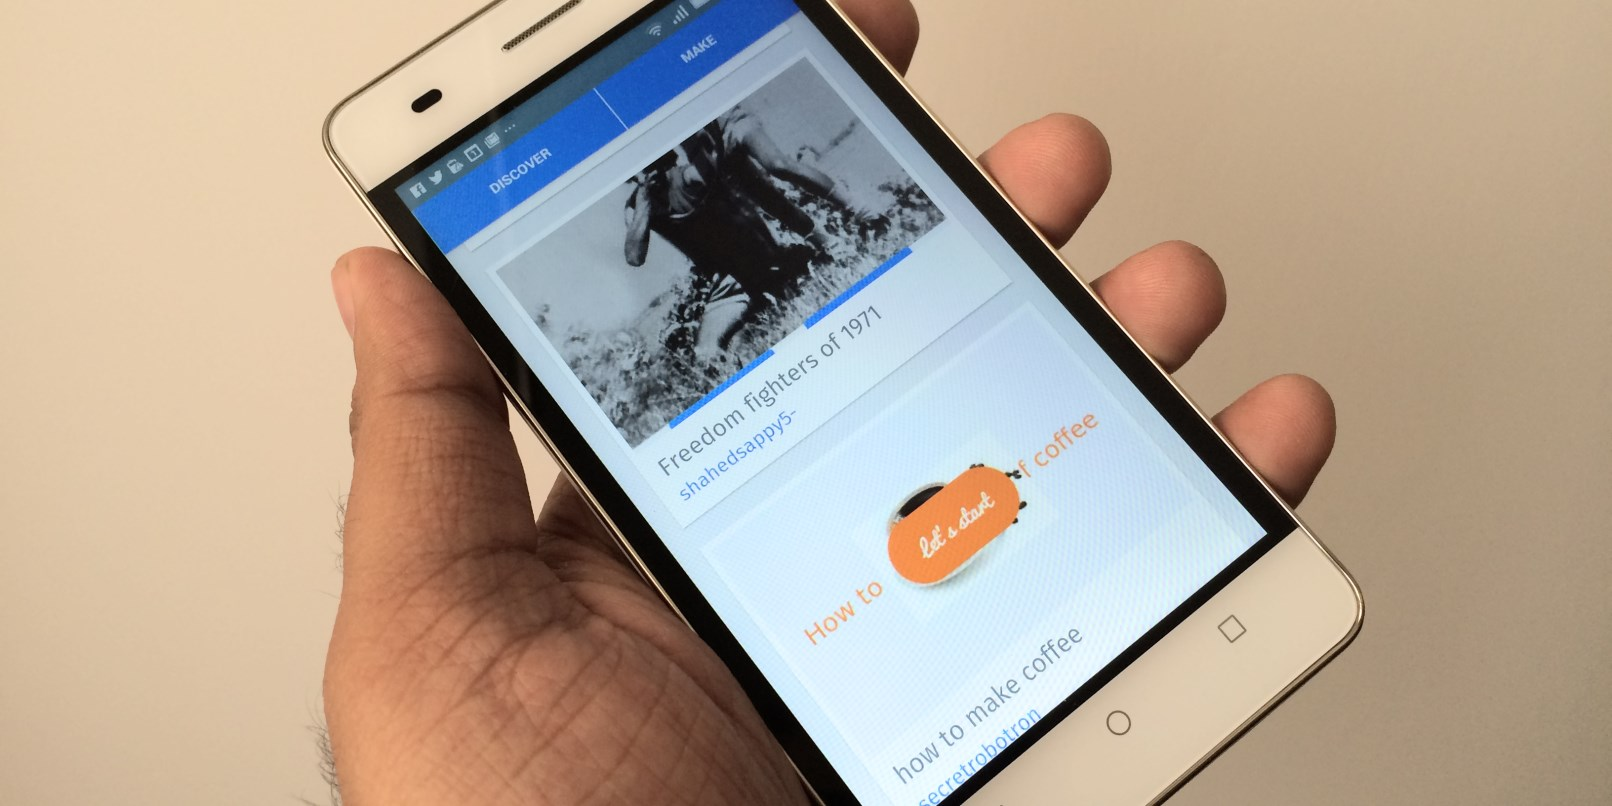 Mozilla launches an Android app for creating content in local languages